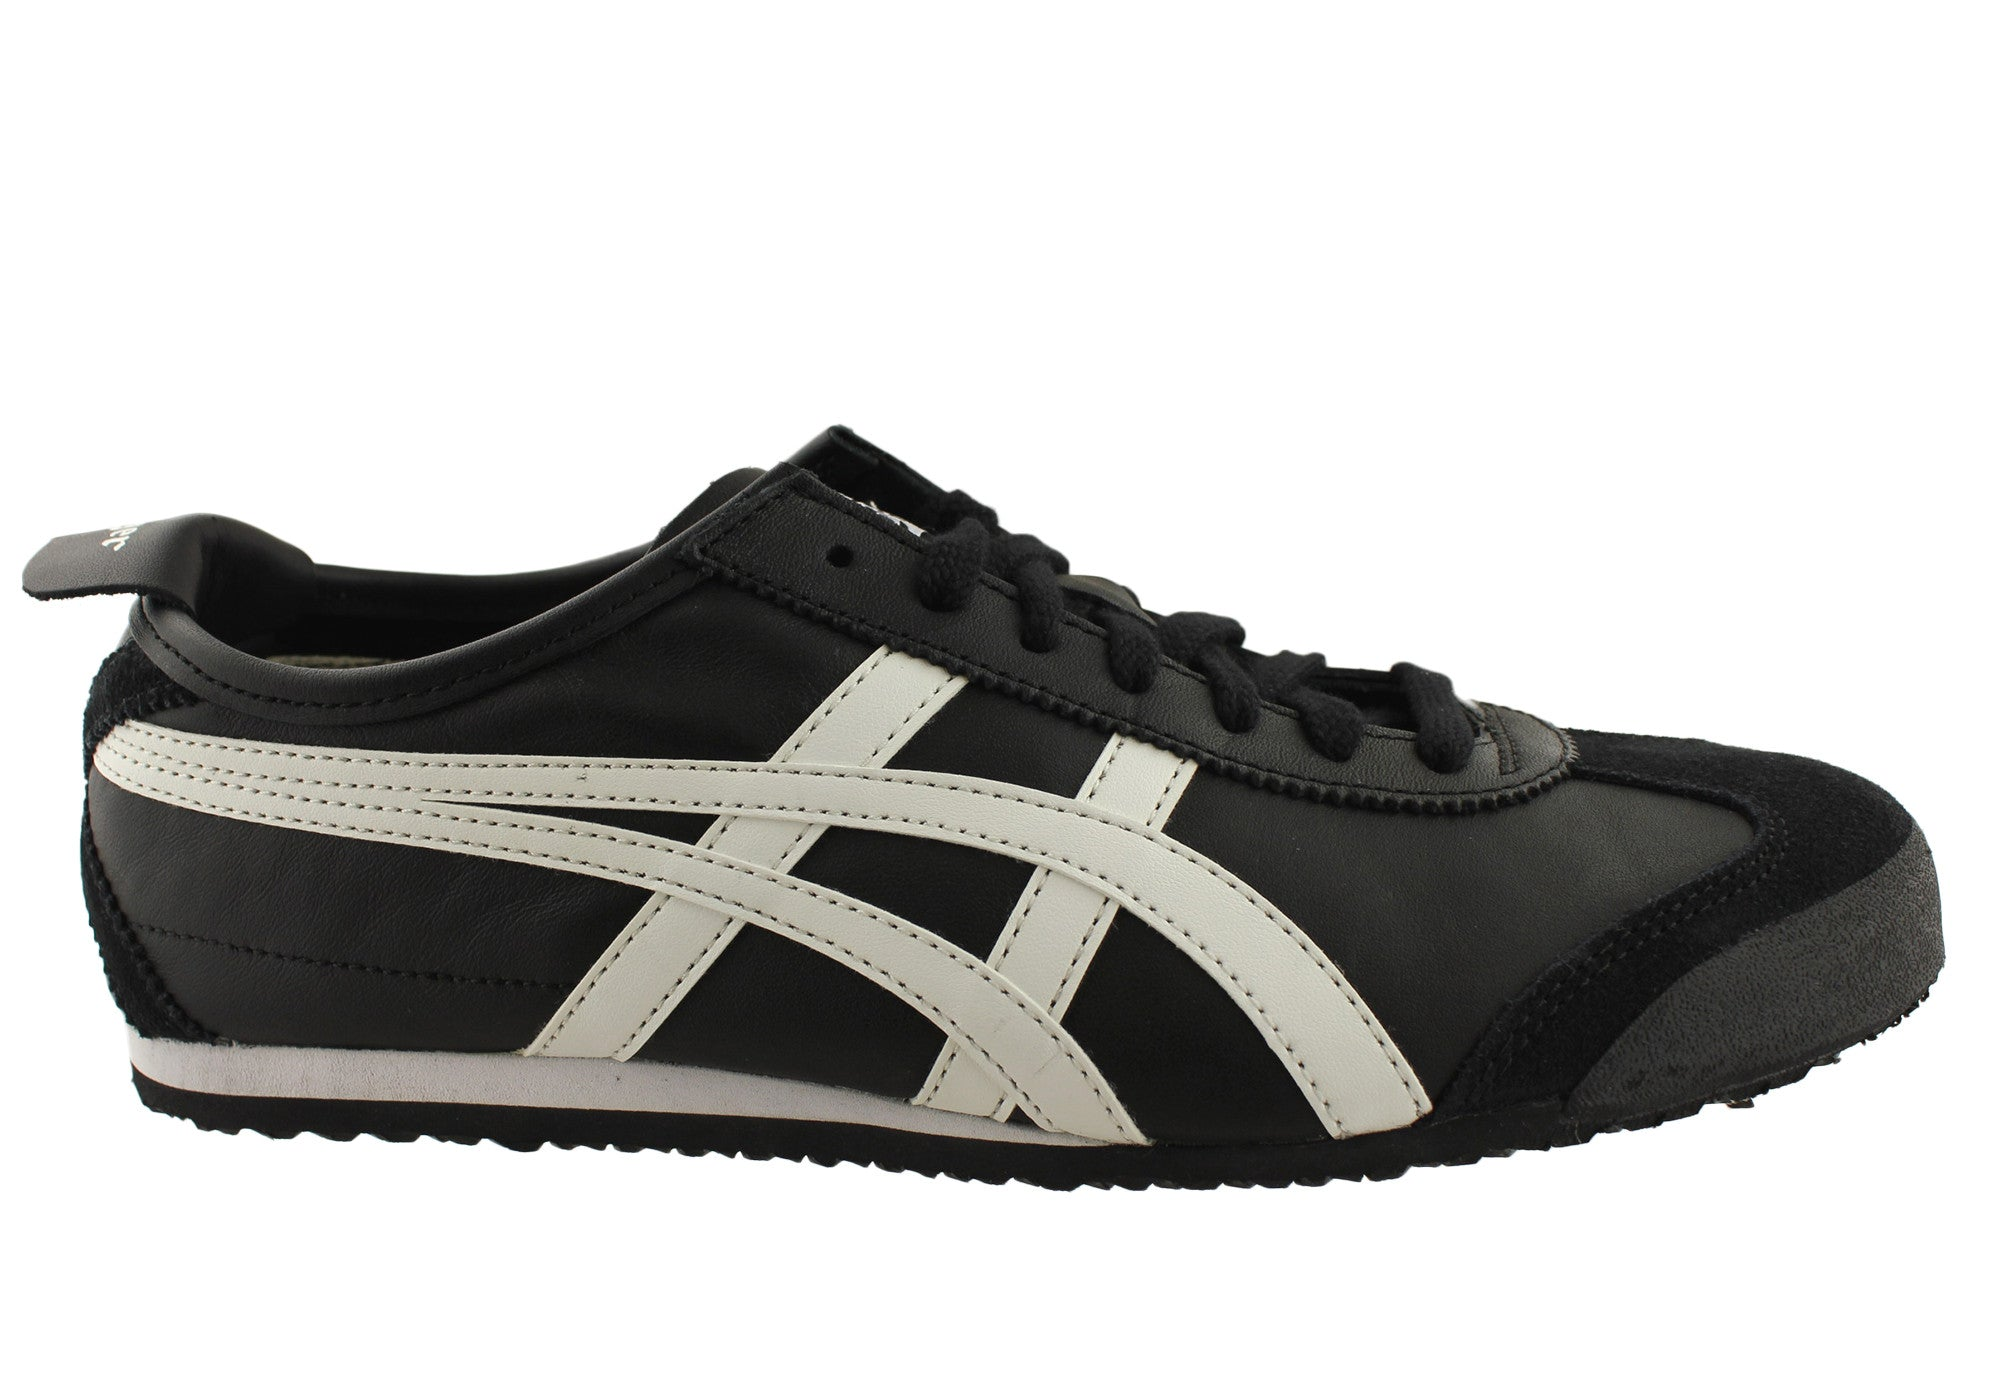 on sale c30ac 31202 Asics Onitsuka Tiger Mexico 66 Mens Leather Lace Up Casual Shoes | Brand  House Direct